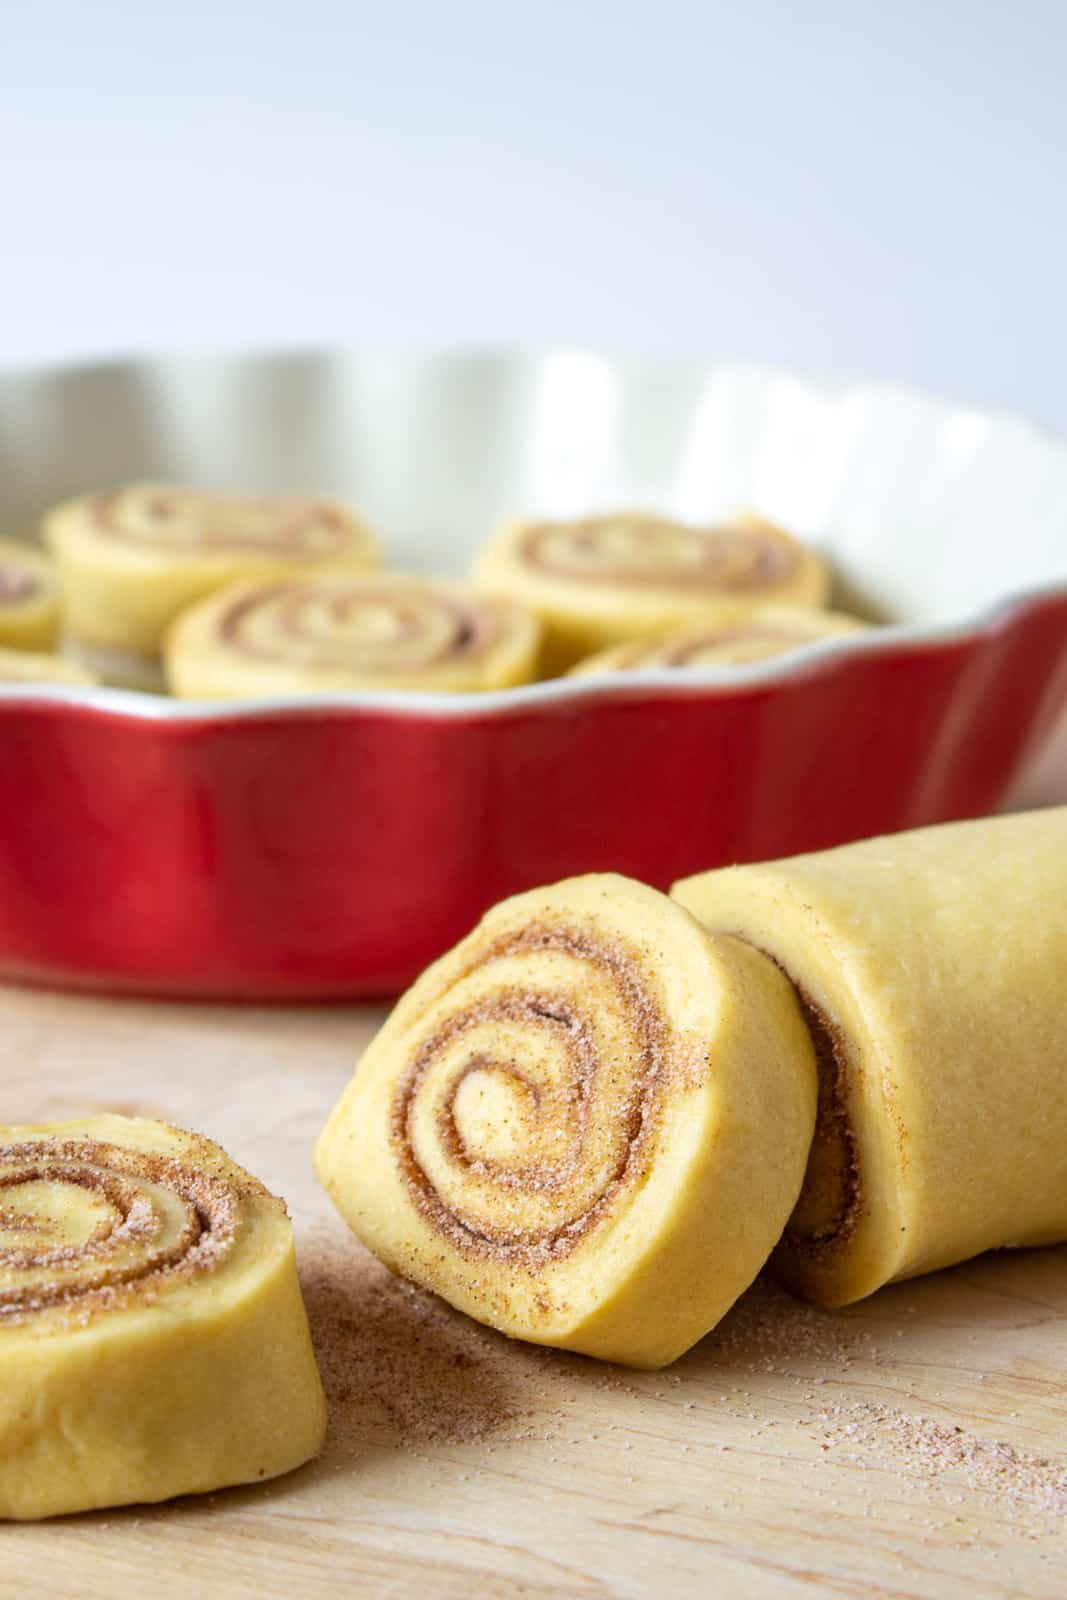 Rolled dough filled with cinnamon and sugar.